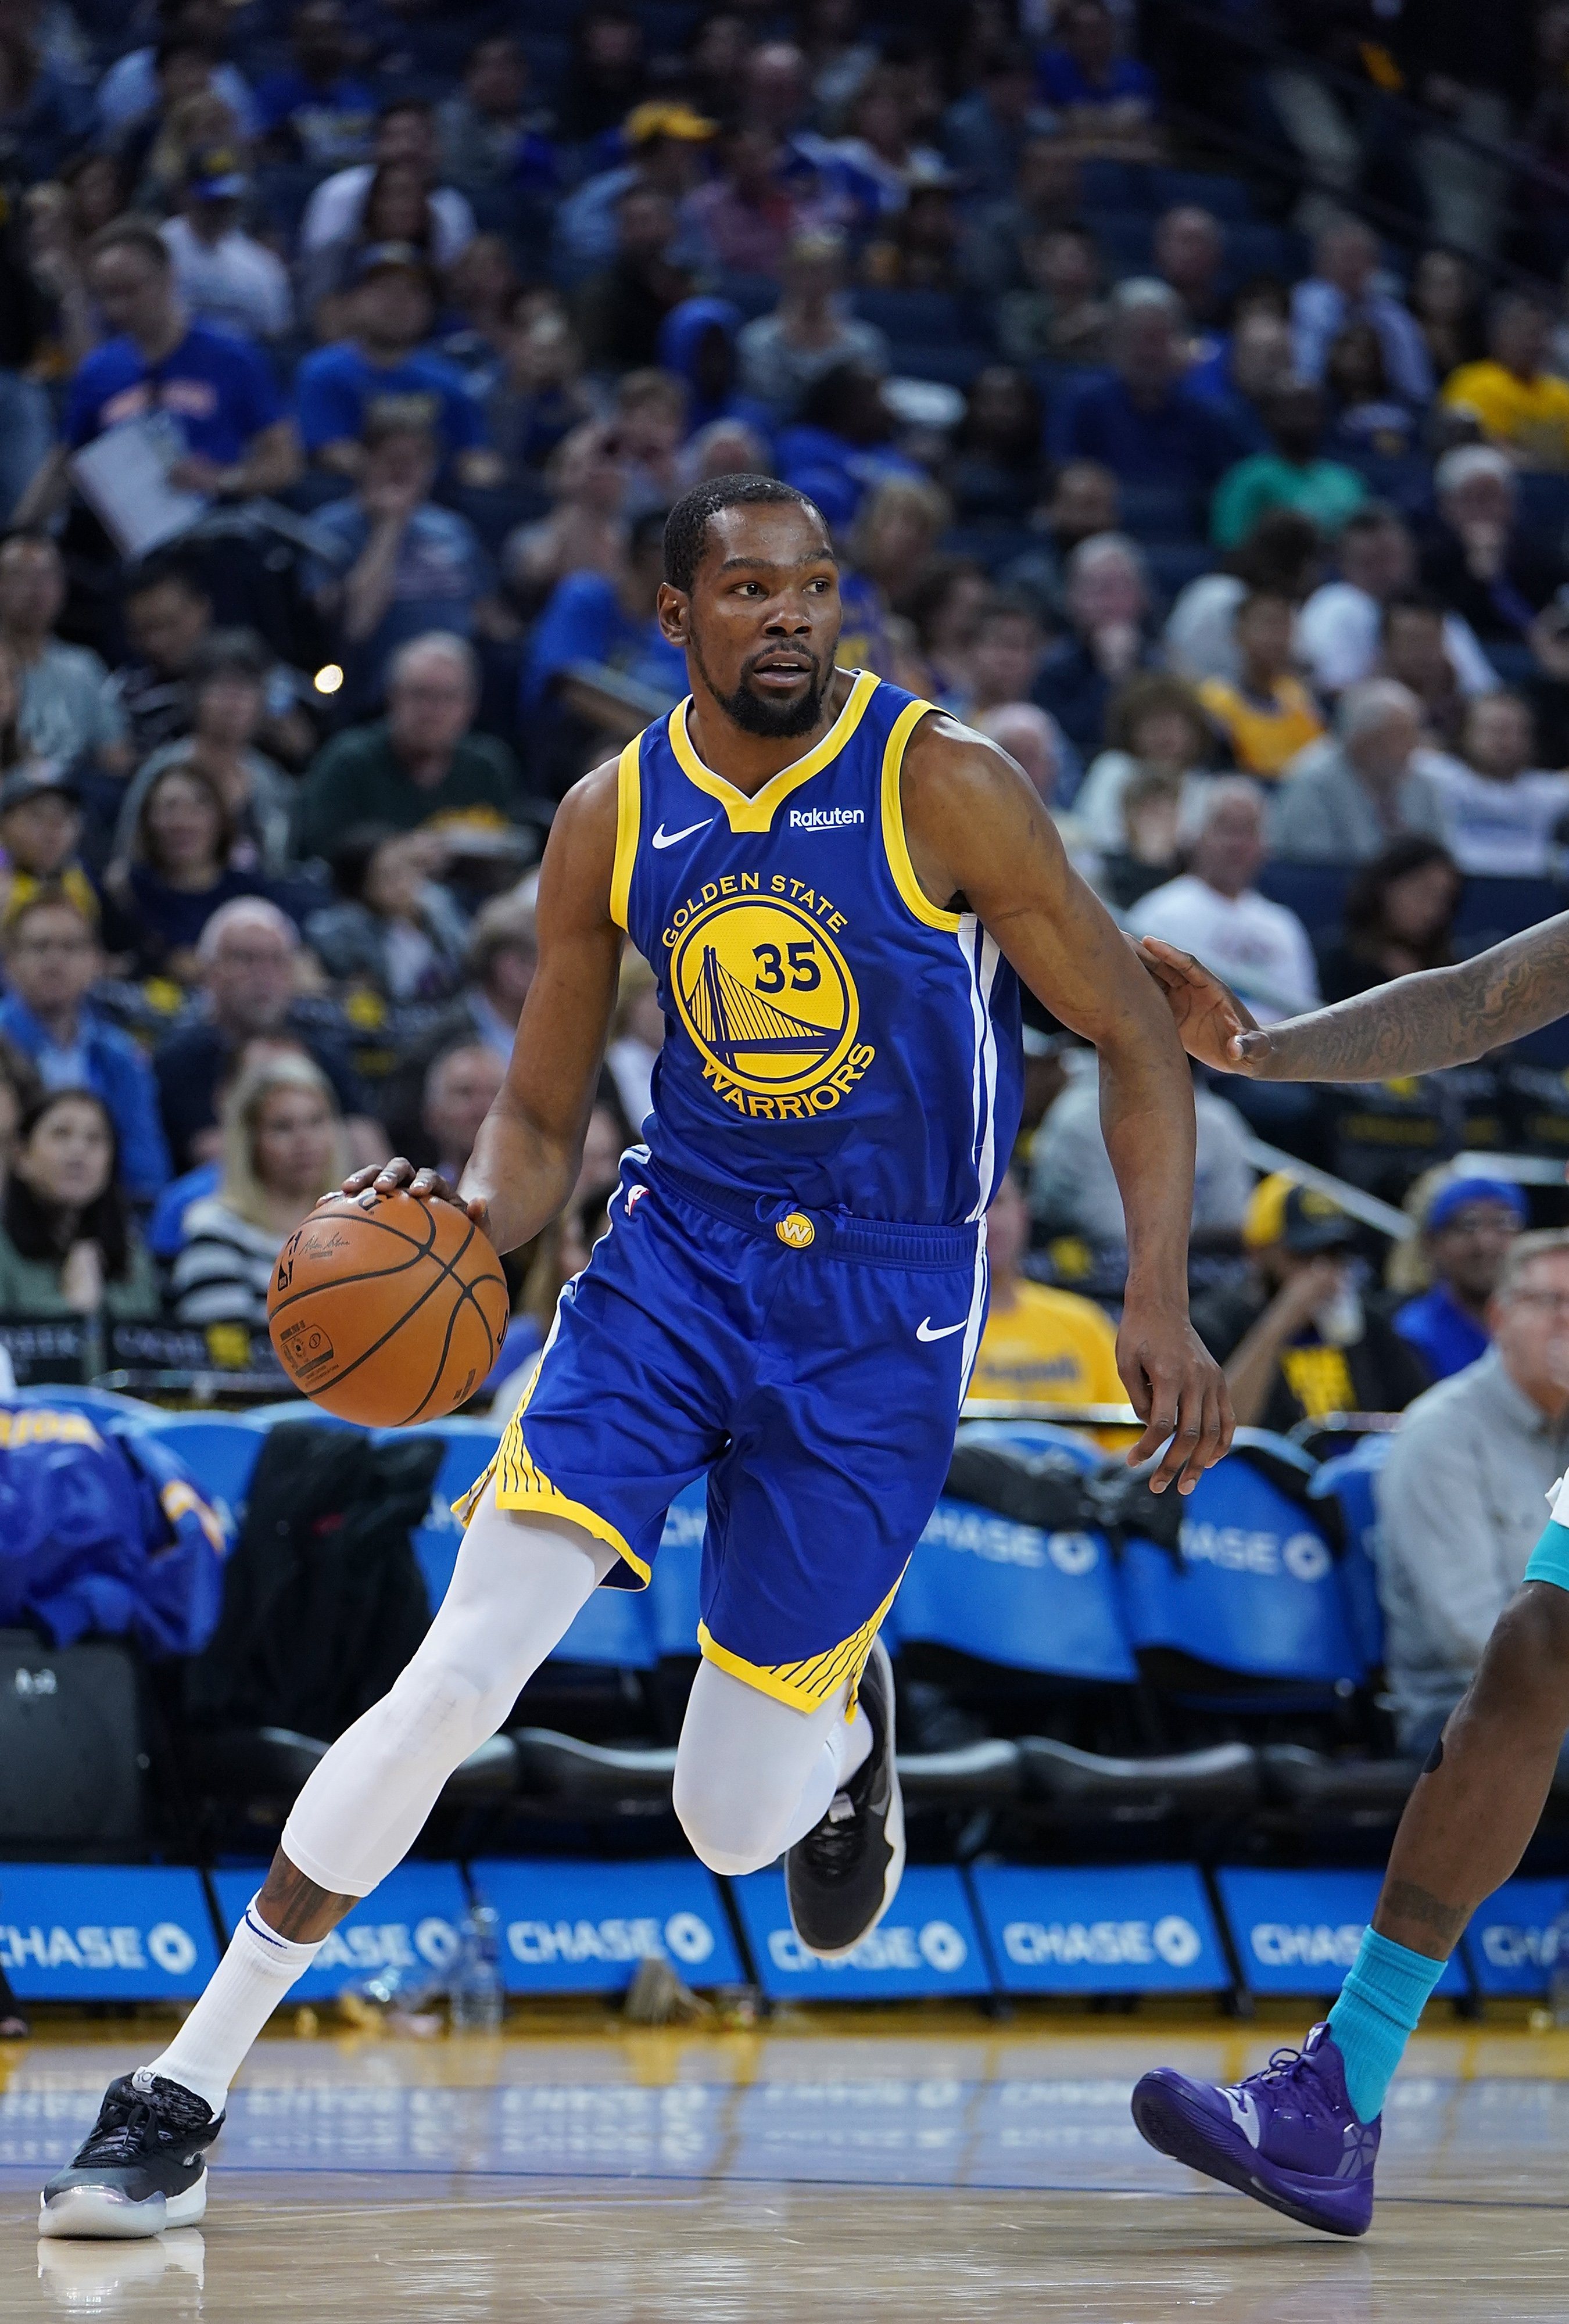 Kevin Durant during the second half of an NBA Basketball game at ORACLE Arena on March 31, 2019  | Photo: GettyImages